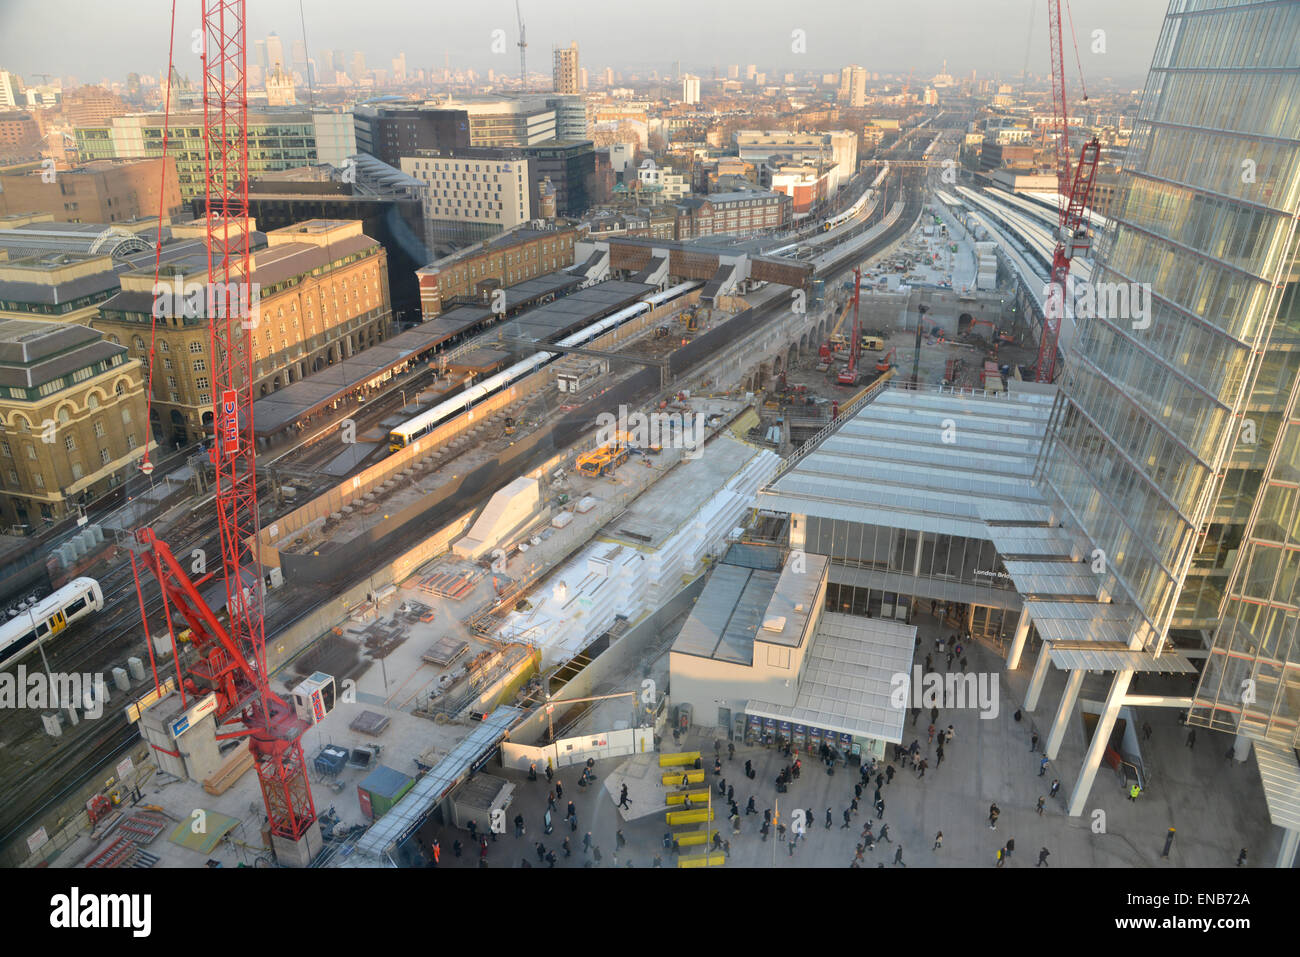 London Bridge Station construction work seen from above - Stock Image